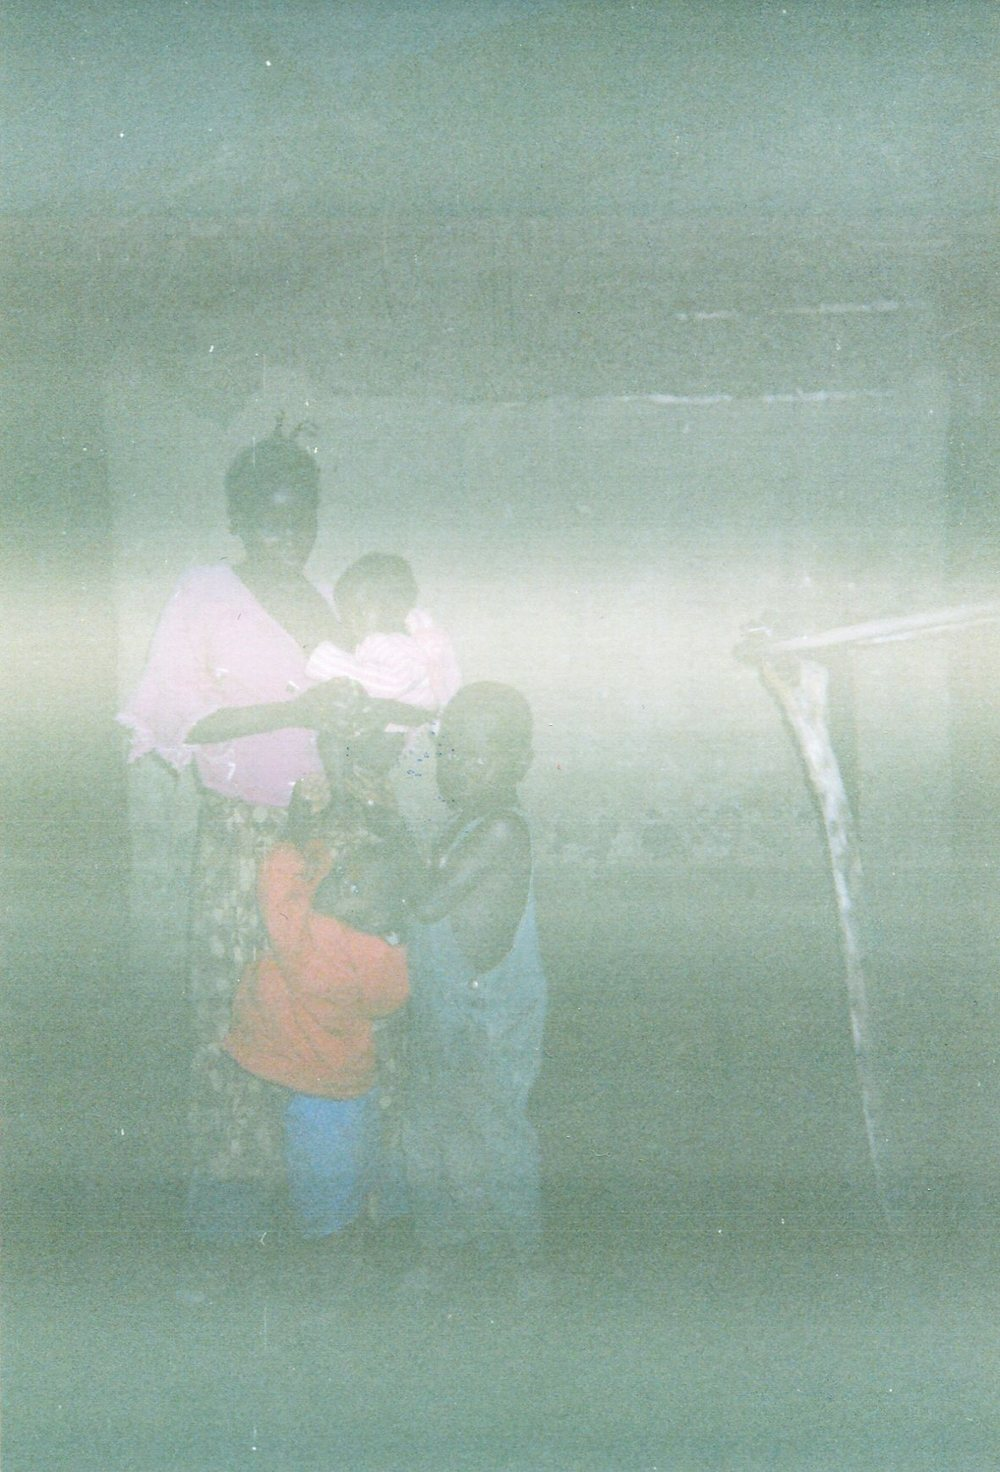 This photo of me and my children shows how we suffered without food and shelter. We continue to suffer until today.